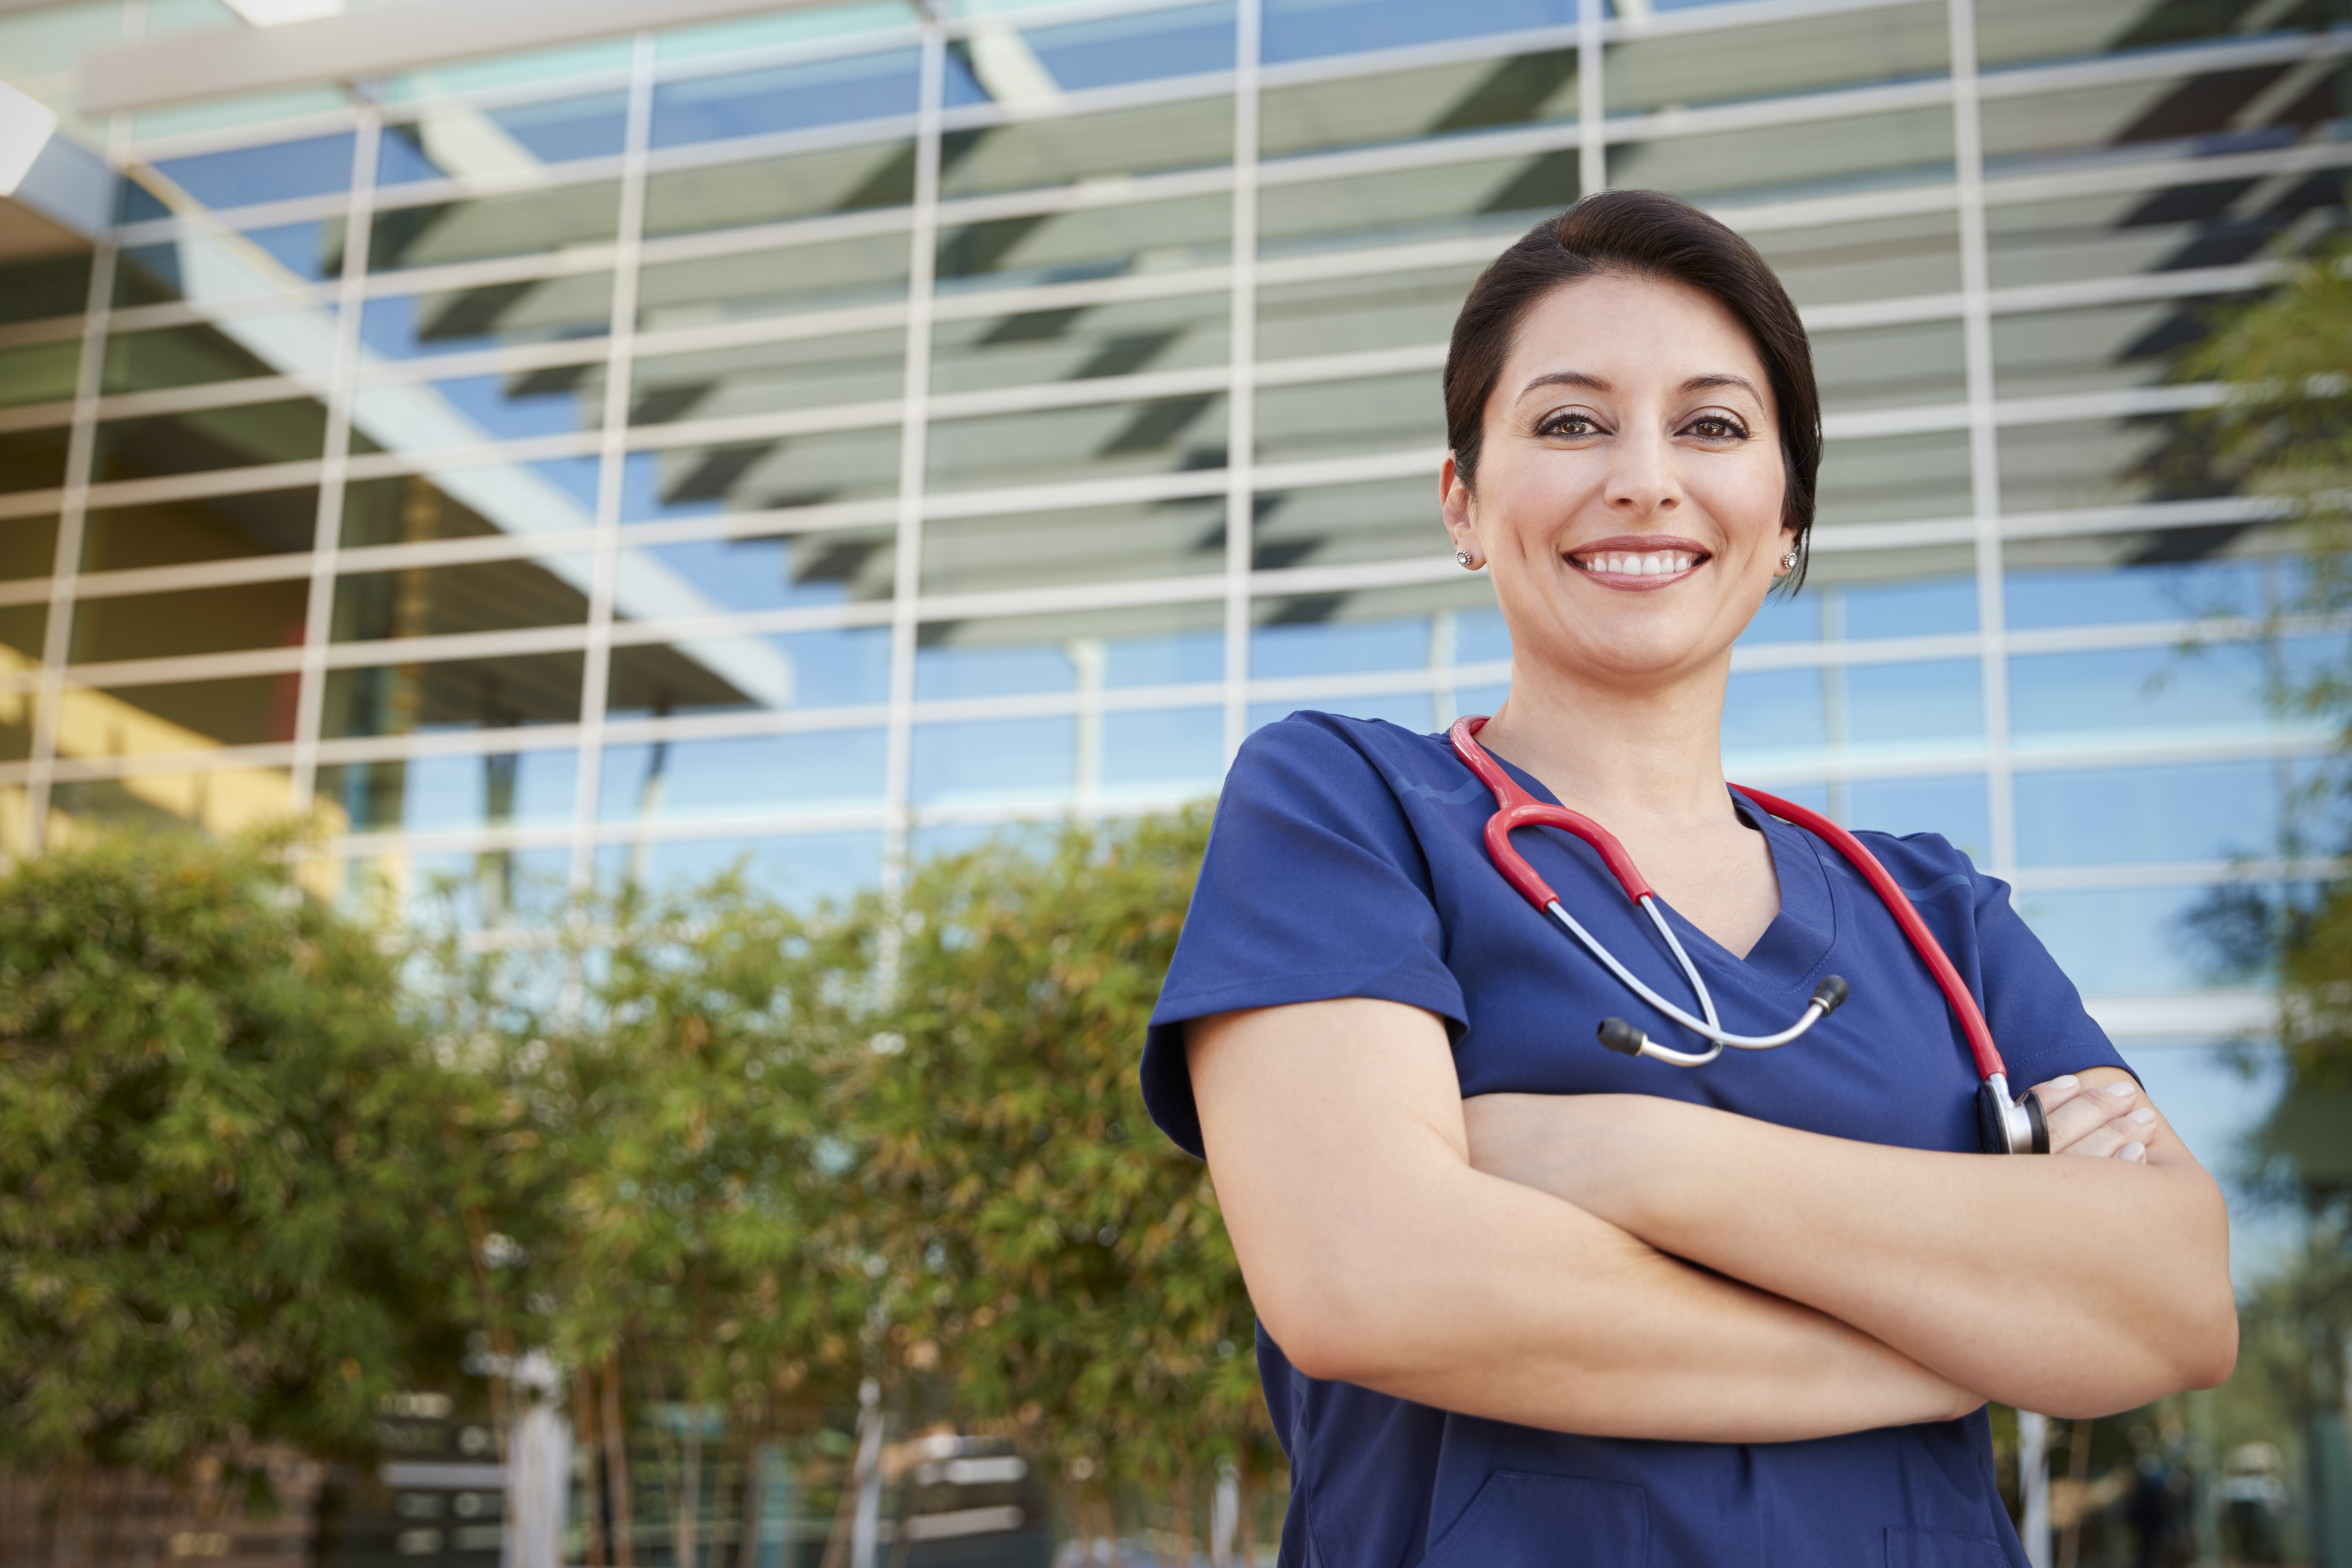 Smiling Hispanic Female Healthcare Worker Outdoors, Portrait